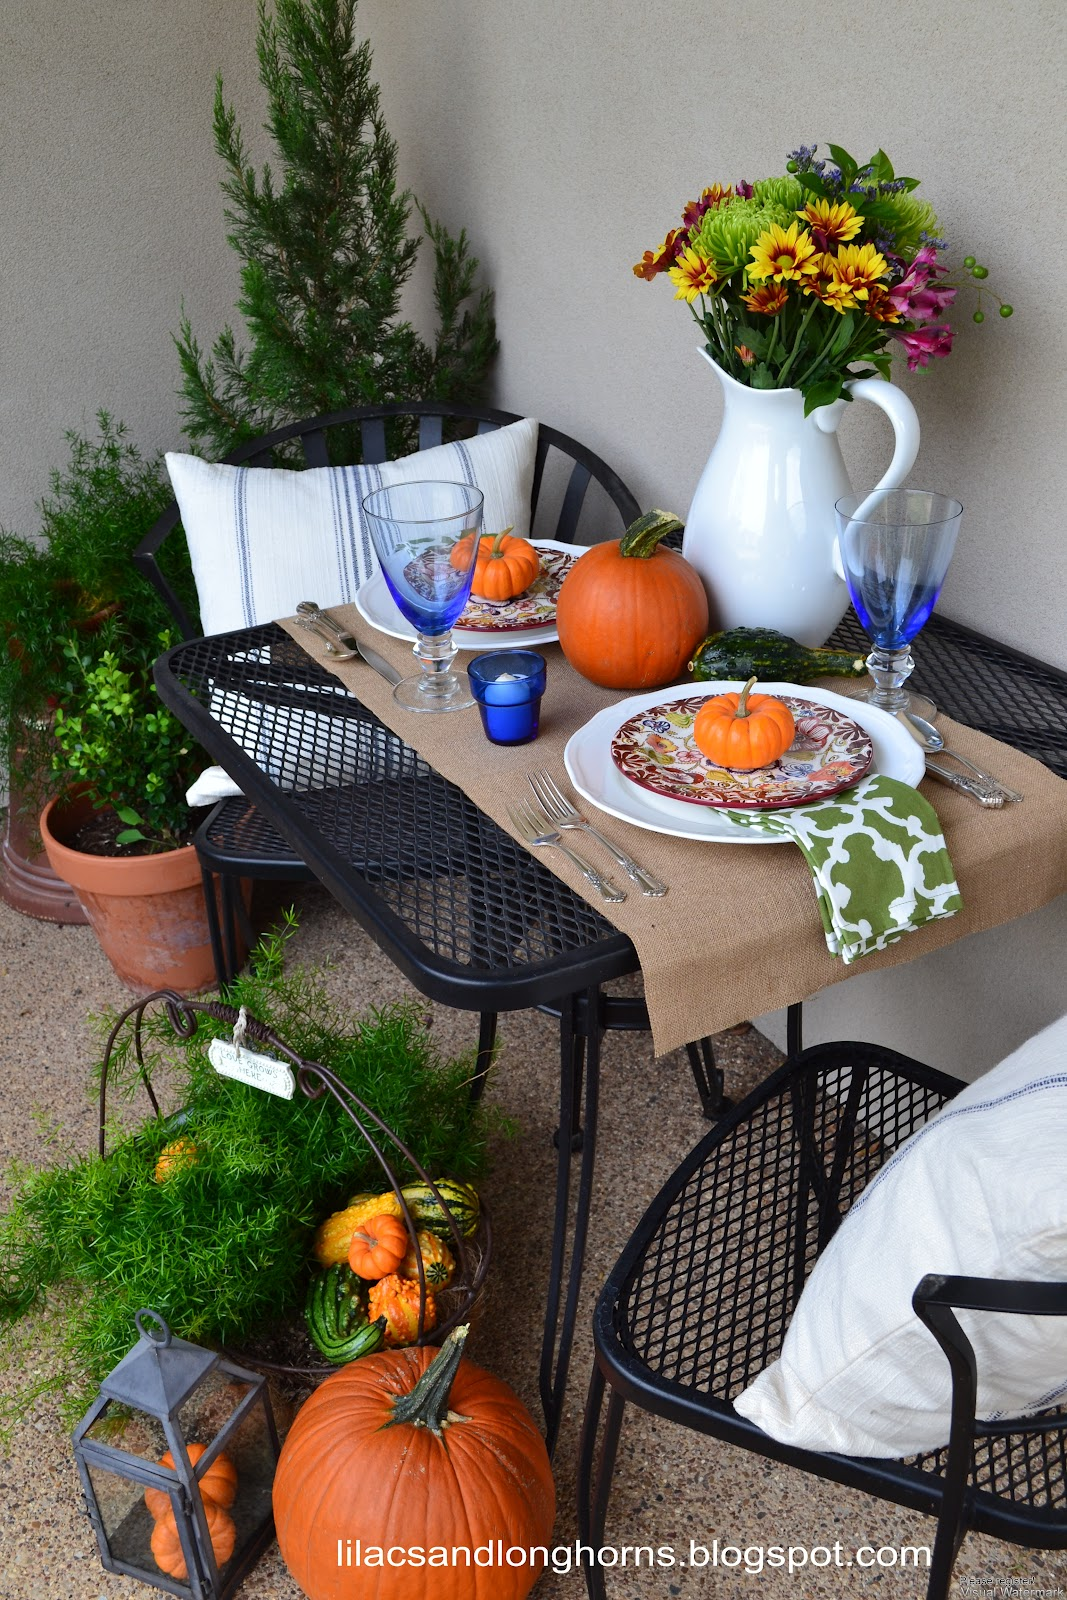 ... combine the two so I set up a little fall tablescape on my front porch. Wouldn\u0027t it be fun to cozy up here and have a little ladies lunch with a friend? & Outdoor Fall Table SettingLilacs and Longhorns